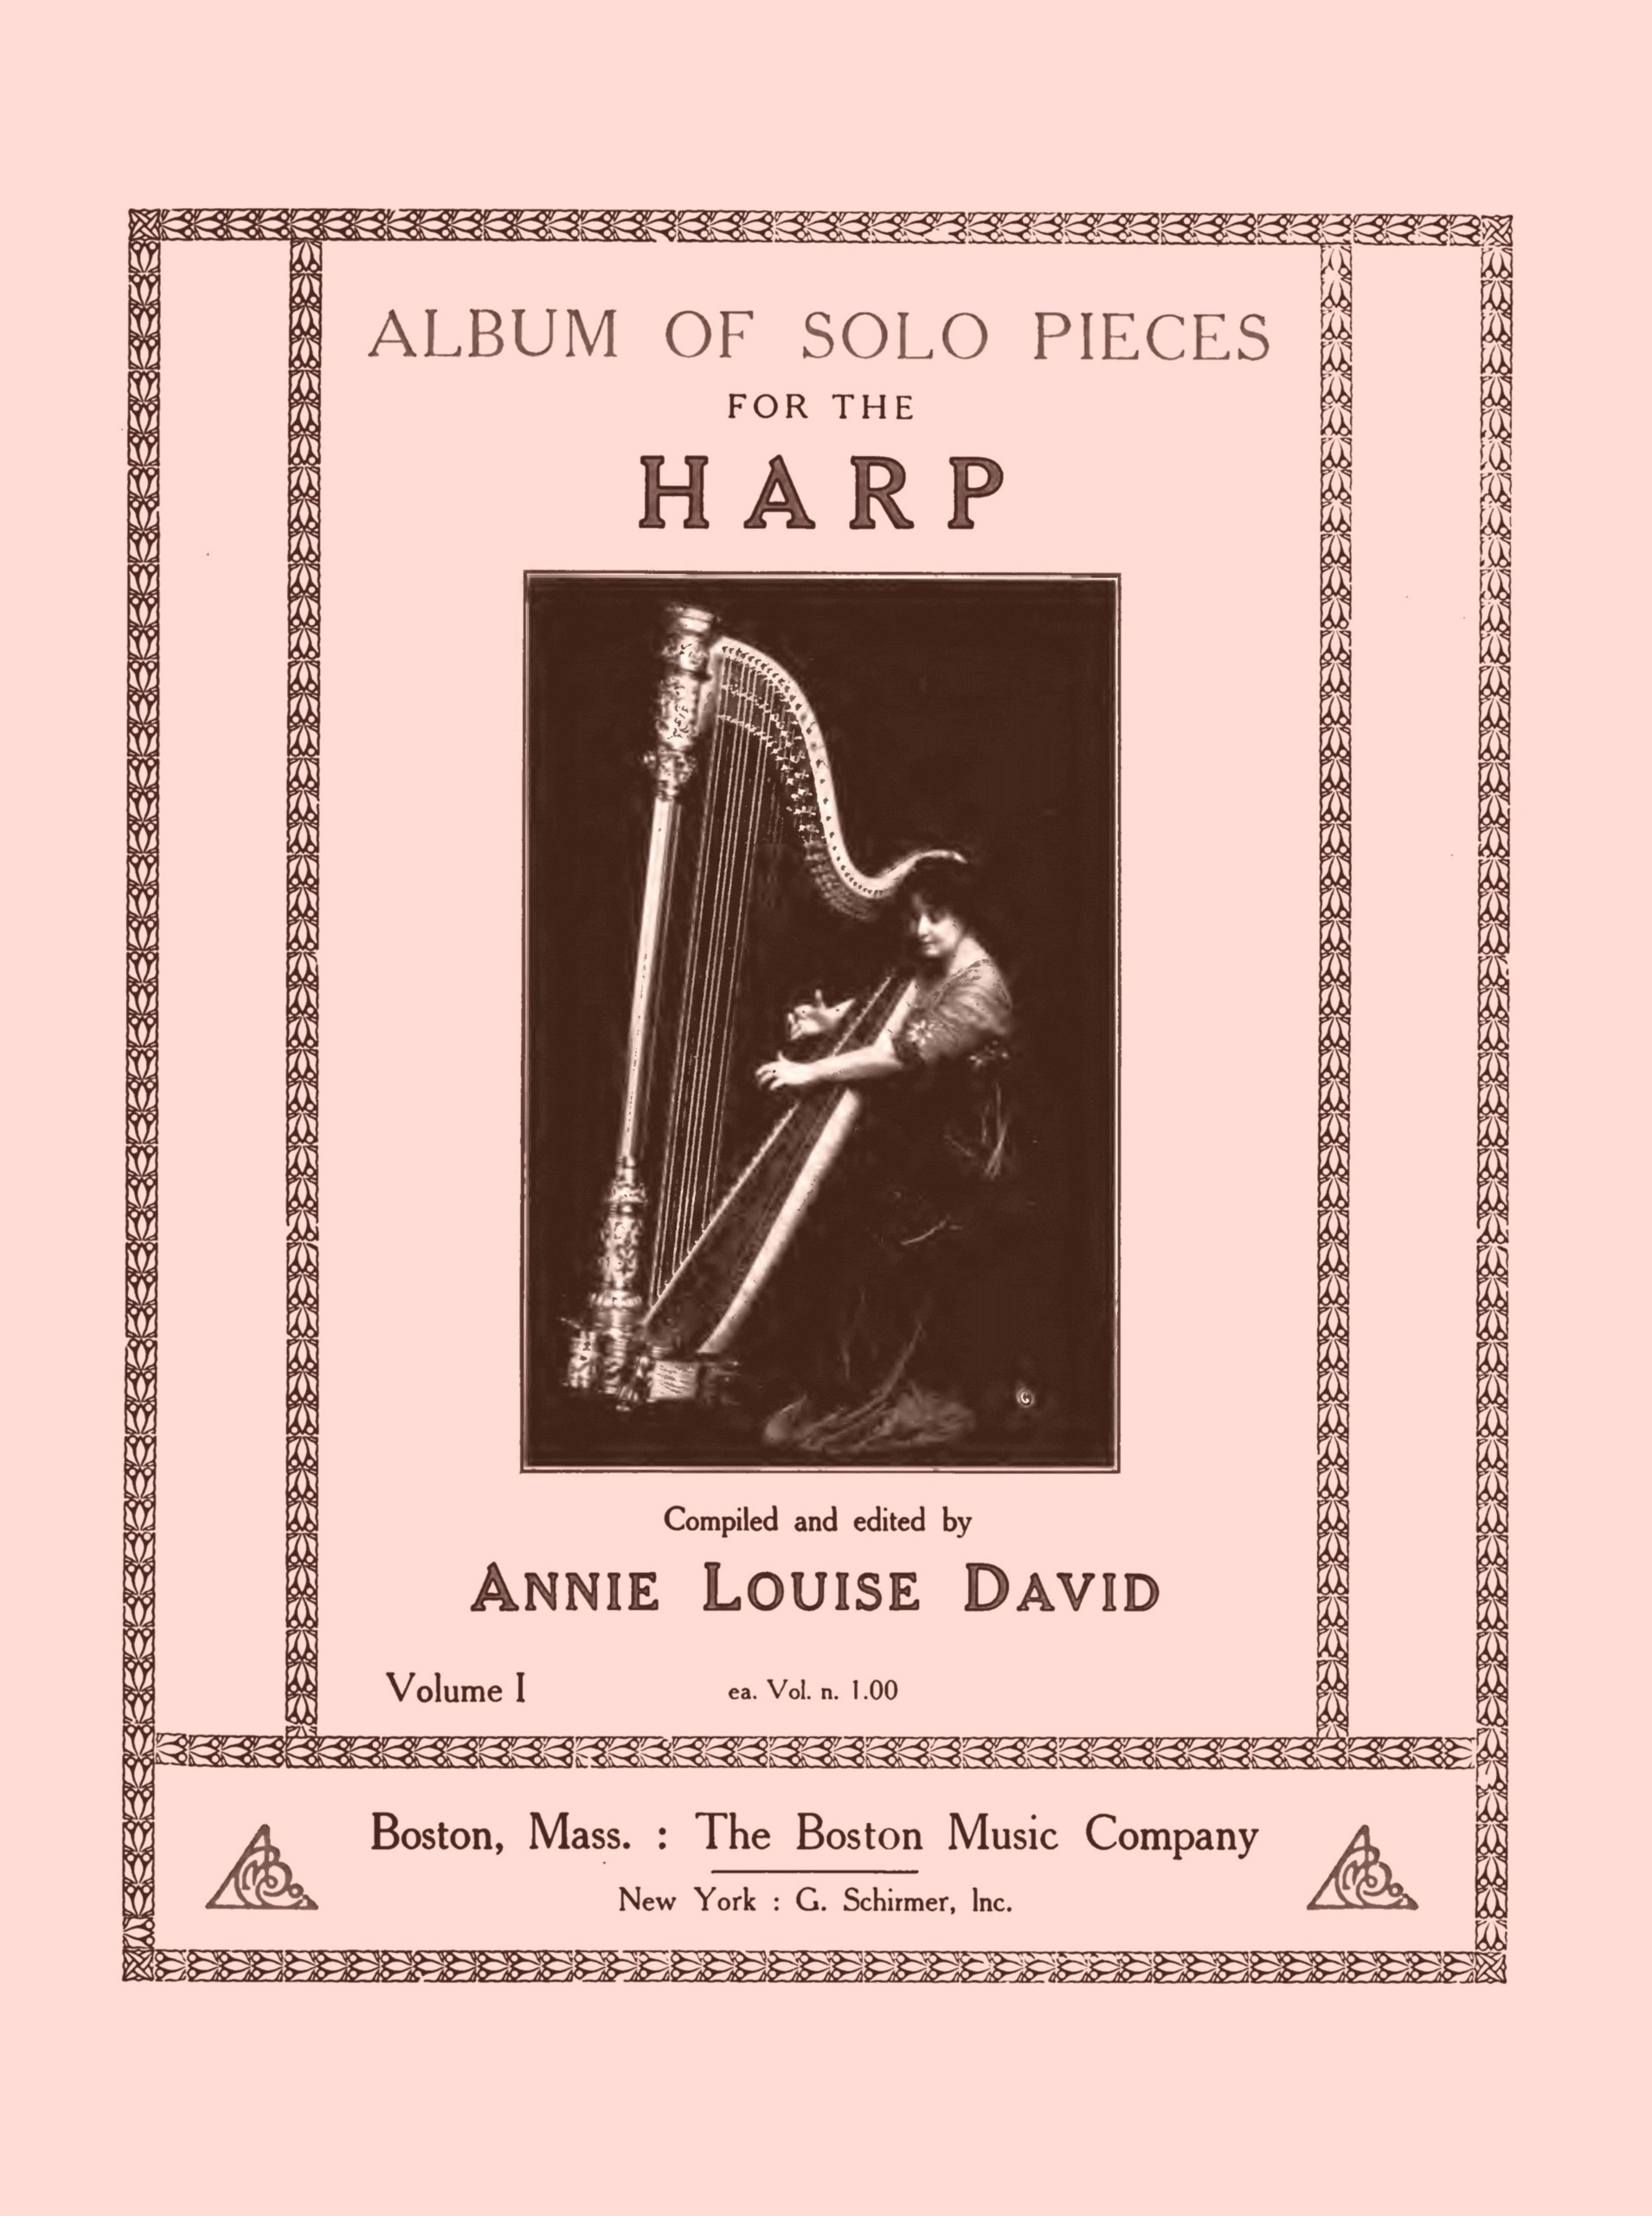 Download Album of solo pieces for the harp (Volume 1) by Annie Louise David (Loukine Prelude, Poenitz Music Box, Hasselmans Prayer, Faure Slumber-Song Zabel, Huberg Polonaise ...) [2014 Loose Leaf Facsimile Edition. Re-Imaged from Original for Great Clarity.] pdf